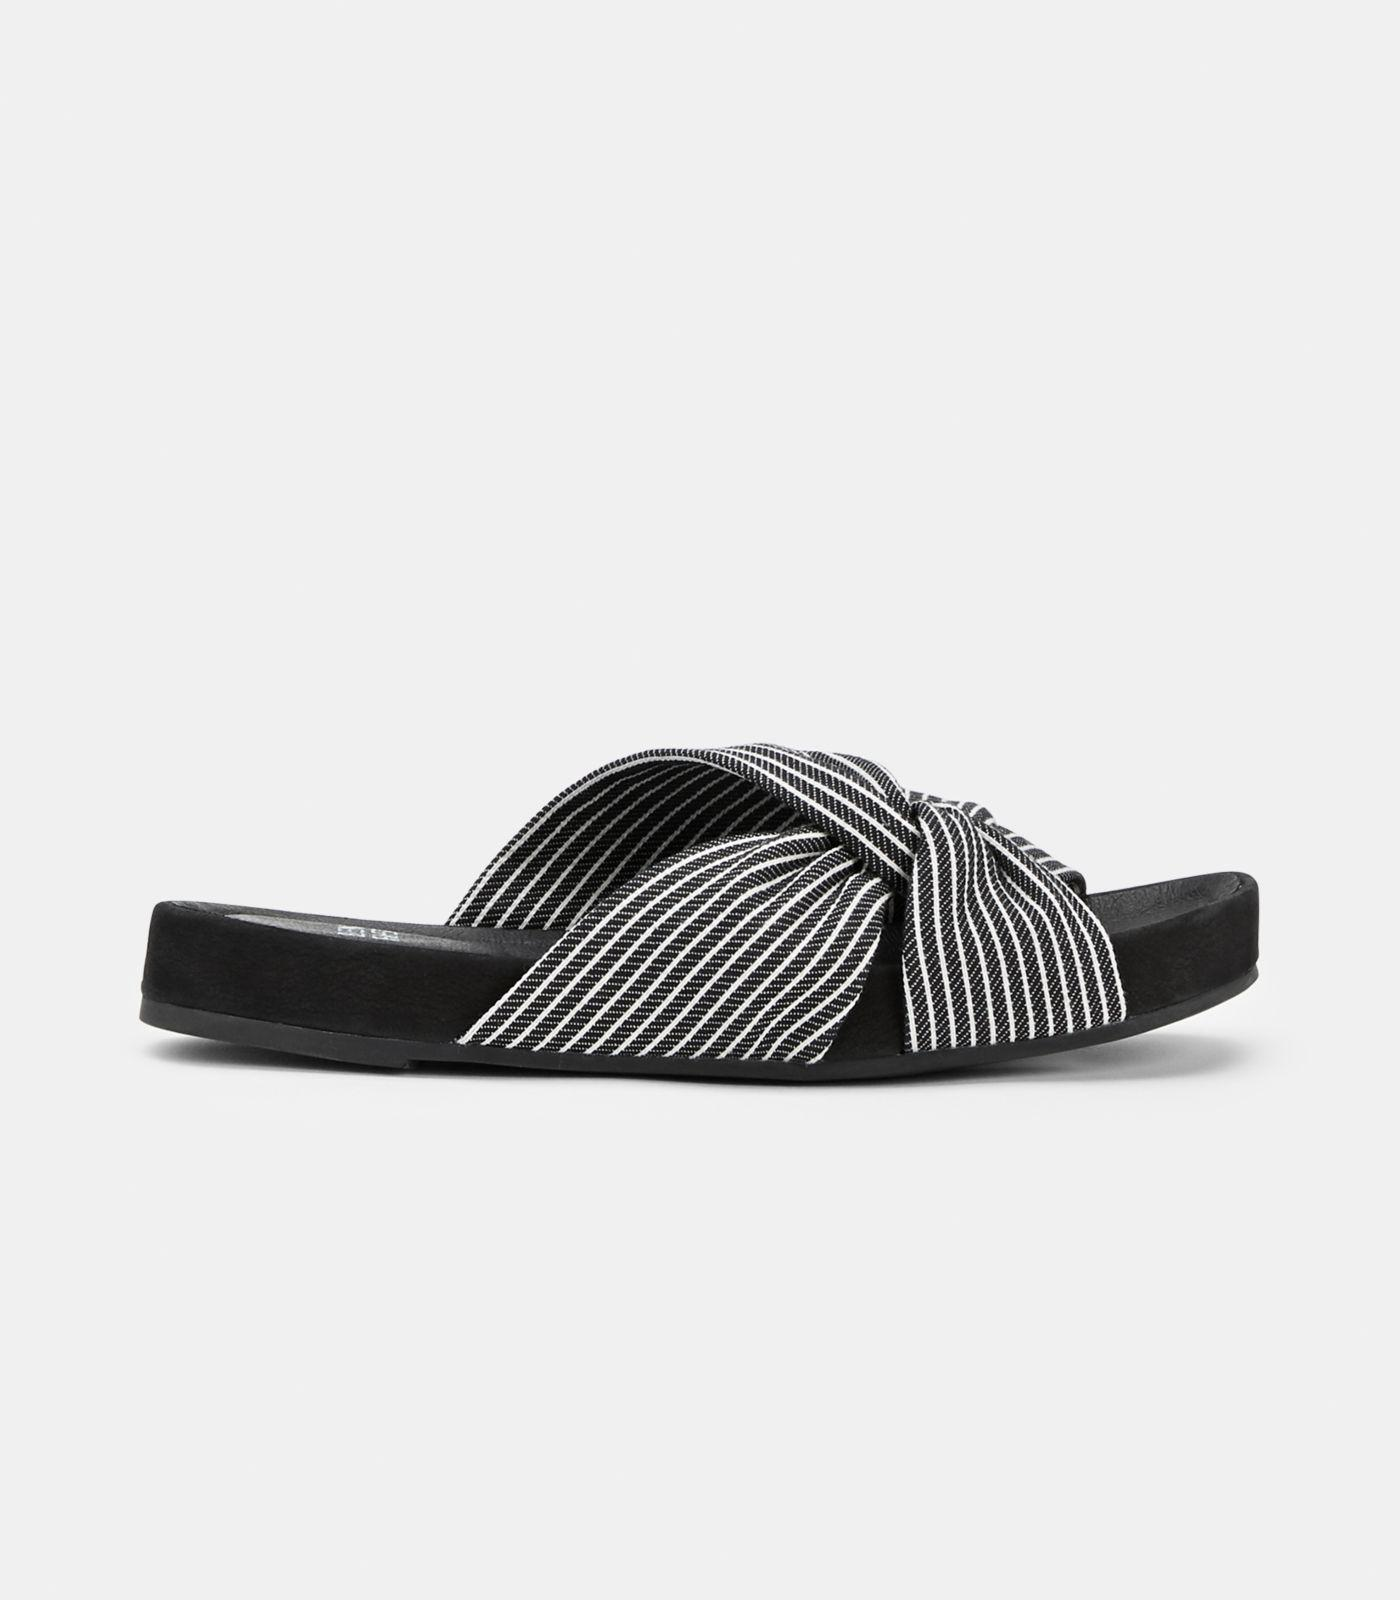 6ca91adeb1d4c Lyst - Eileen Fisher Pal Knotted Stripe Slide Sandals in Black - Save 5%